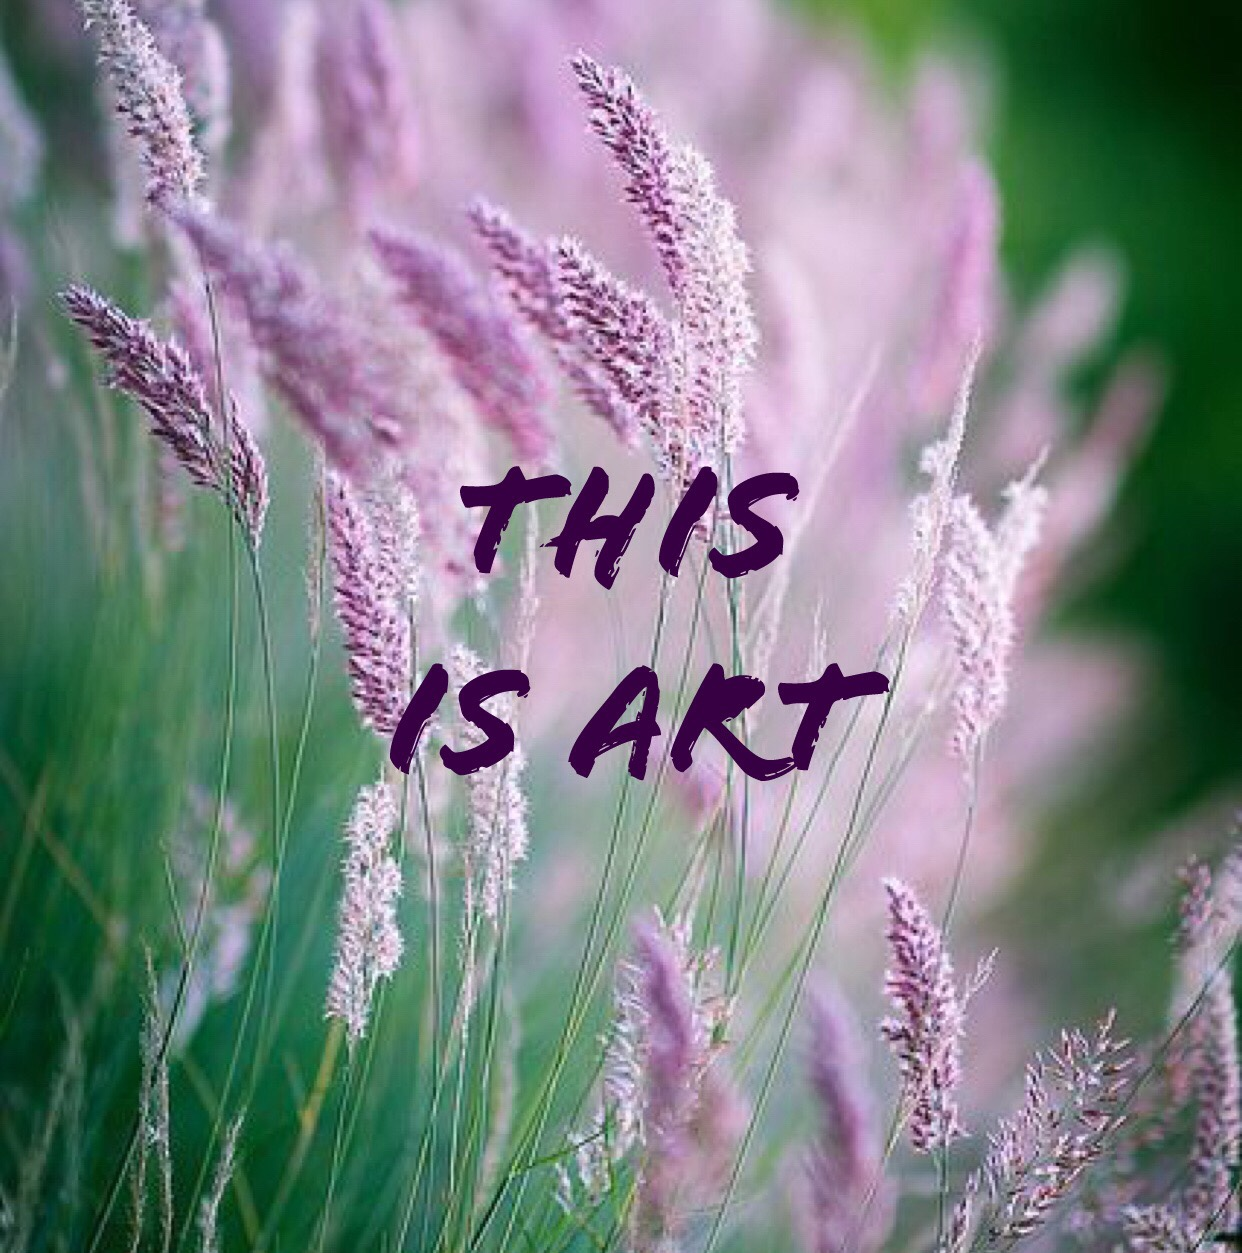 This Is Art 2nd edition by Ron Labryzz, #RLArt 21